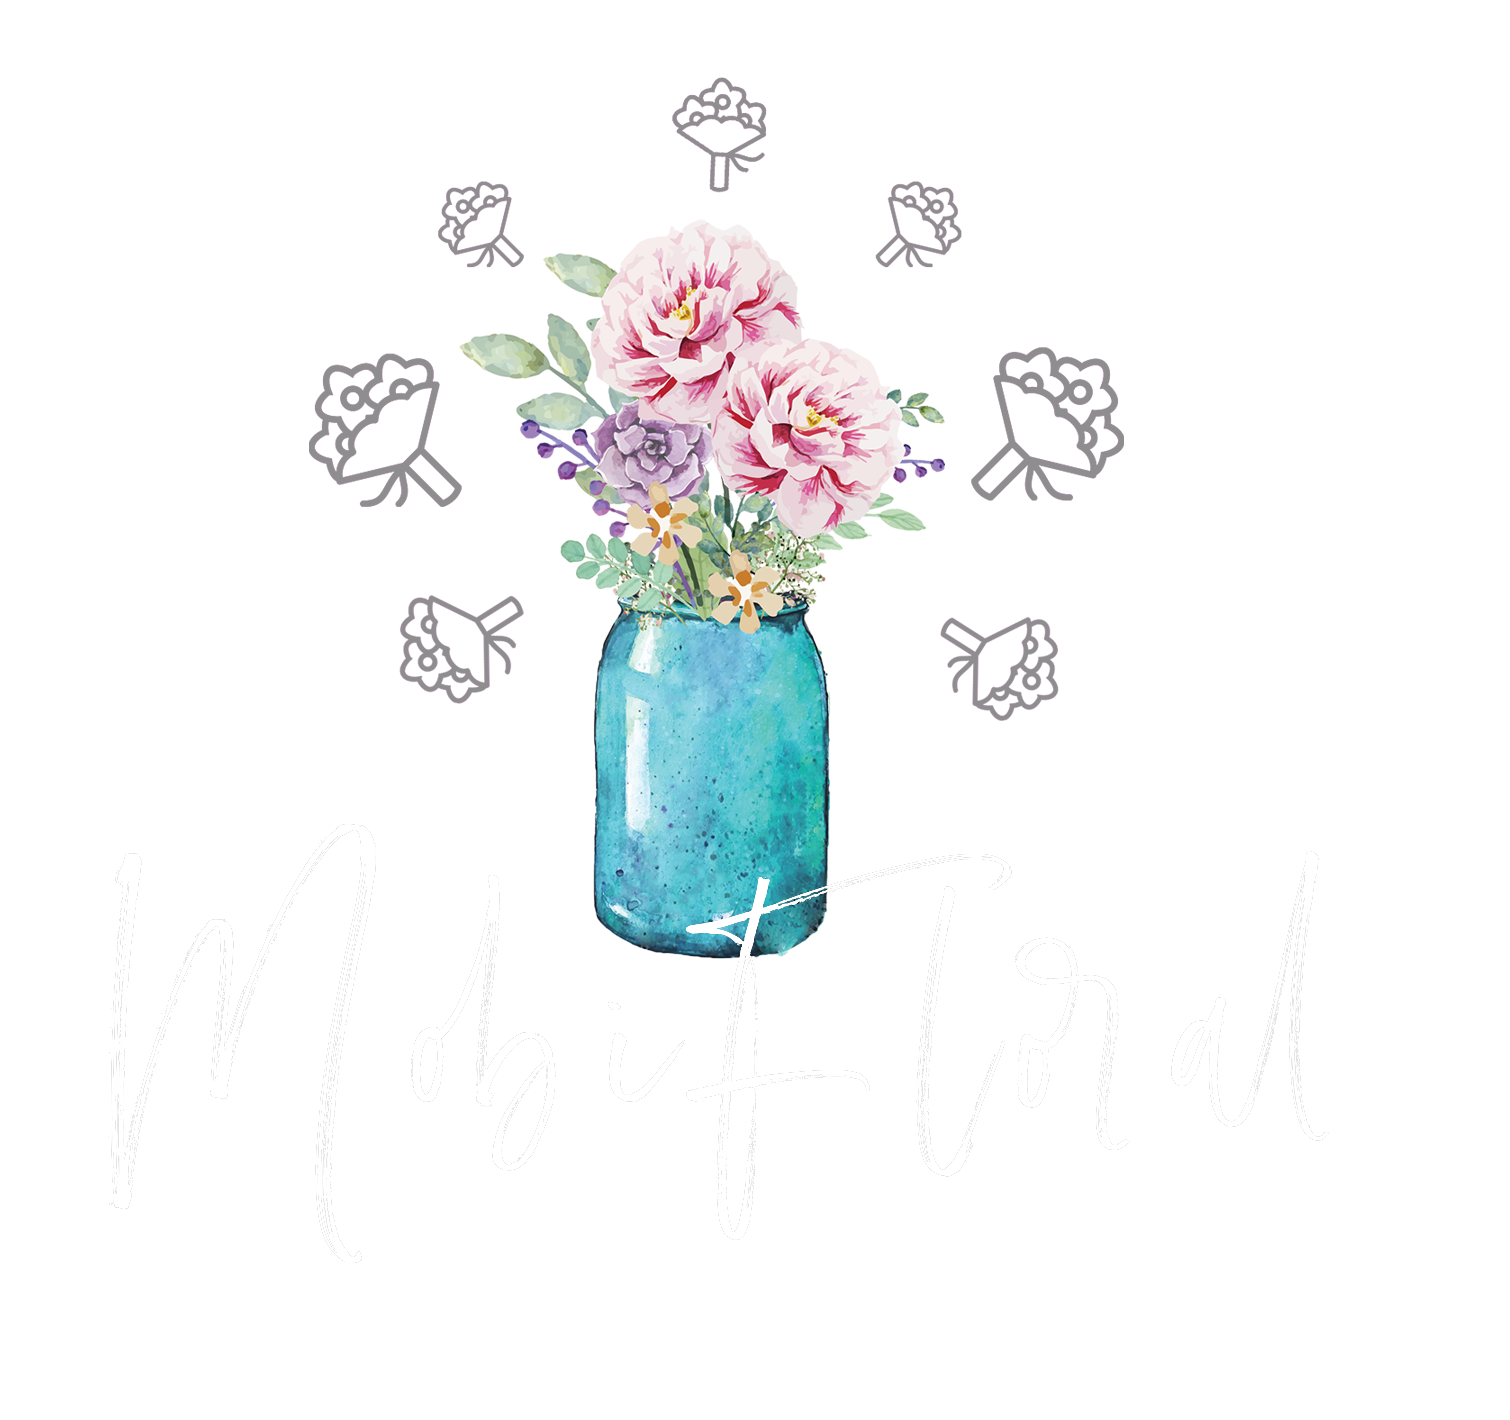 Next Day Flower Delivery - Overnight Flowers | Mobi Floral